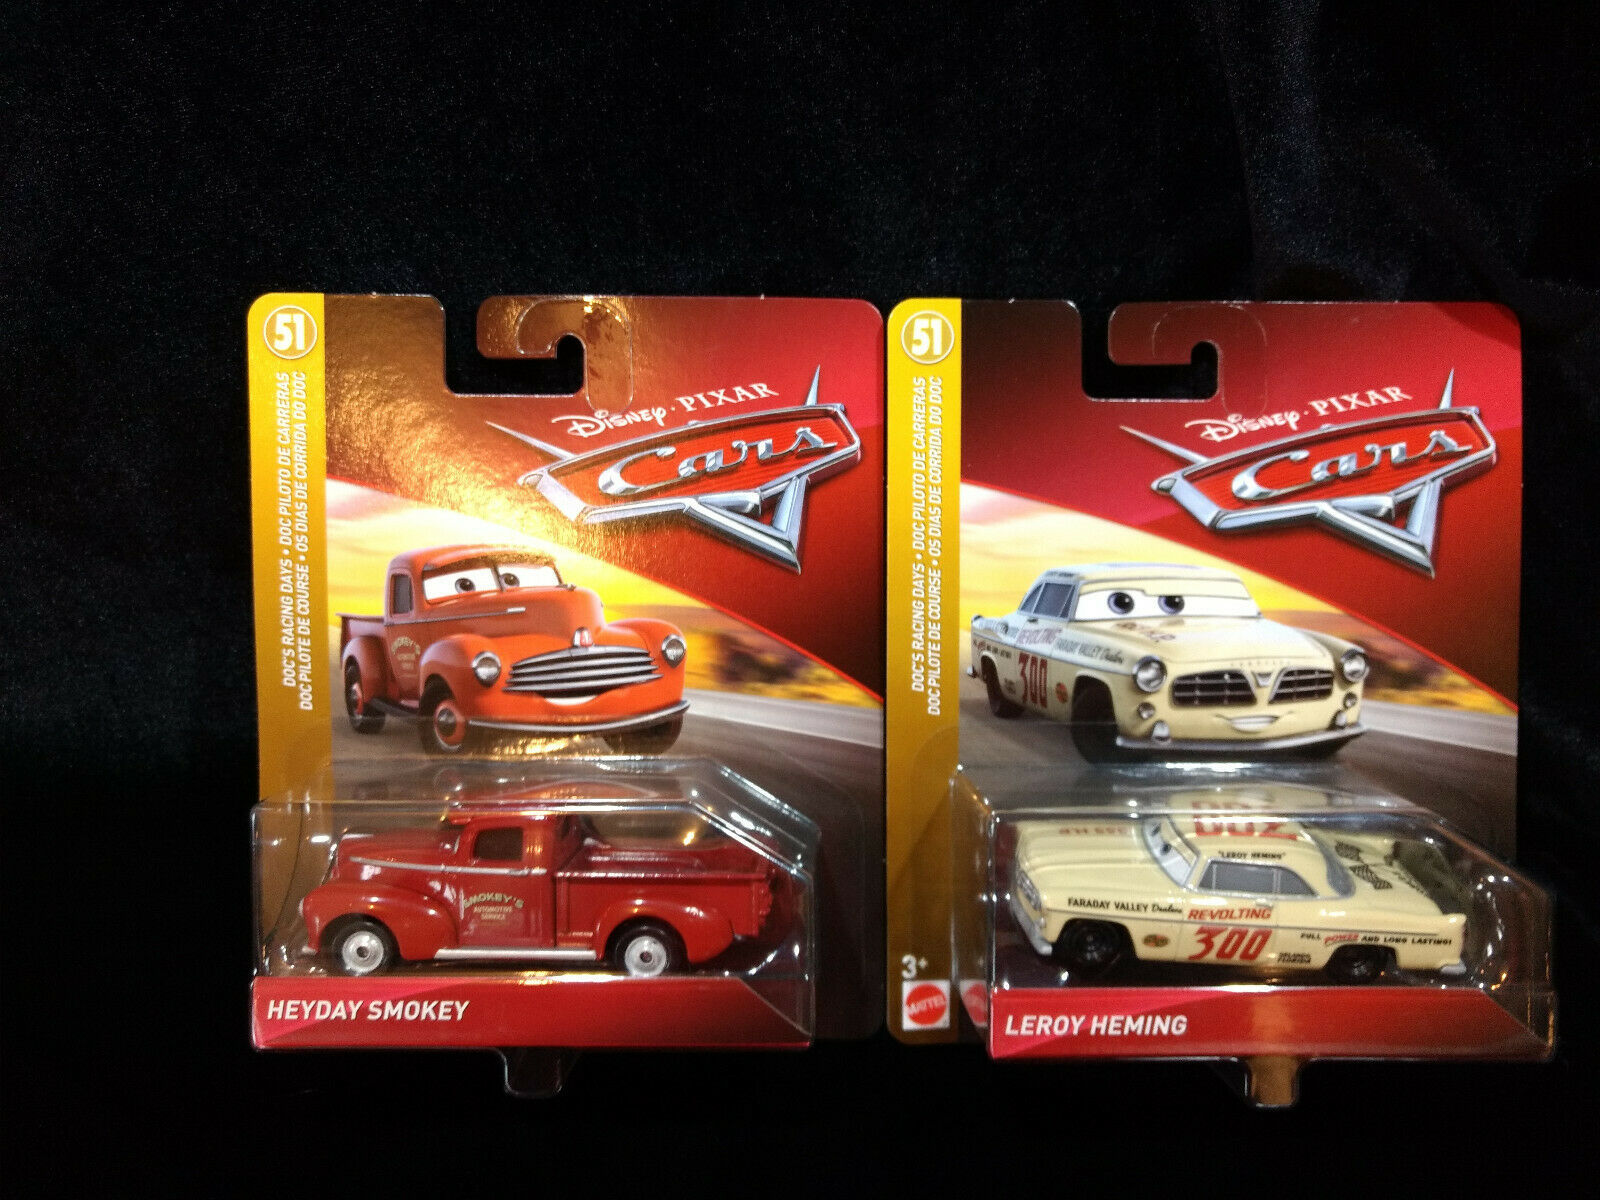 2 New in package Disney Cars Doc's Racing - Heyday Smokey & Leroy Heming